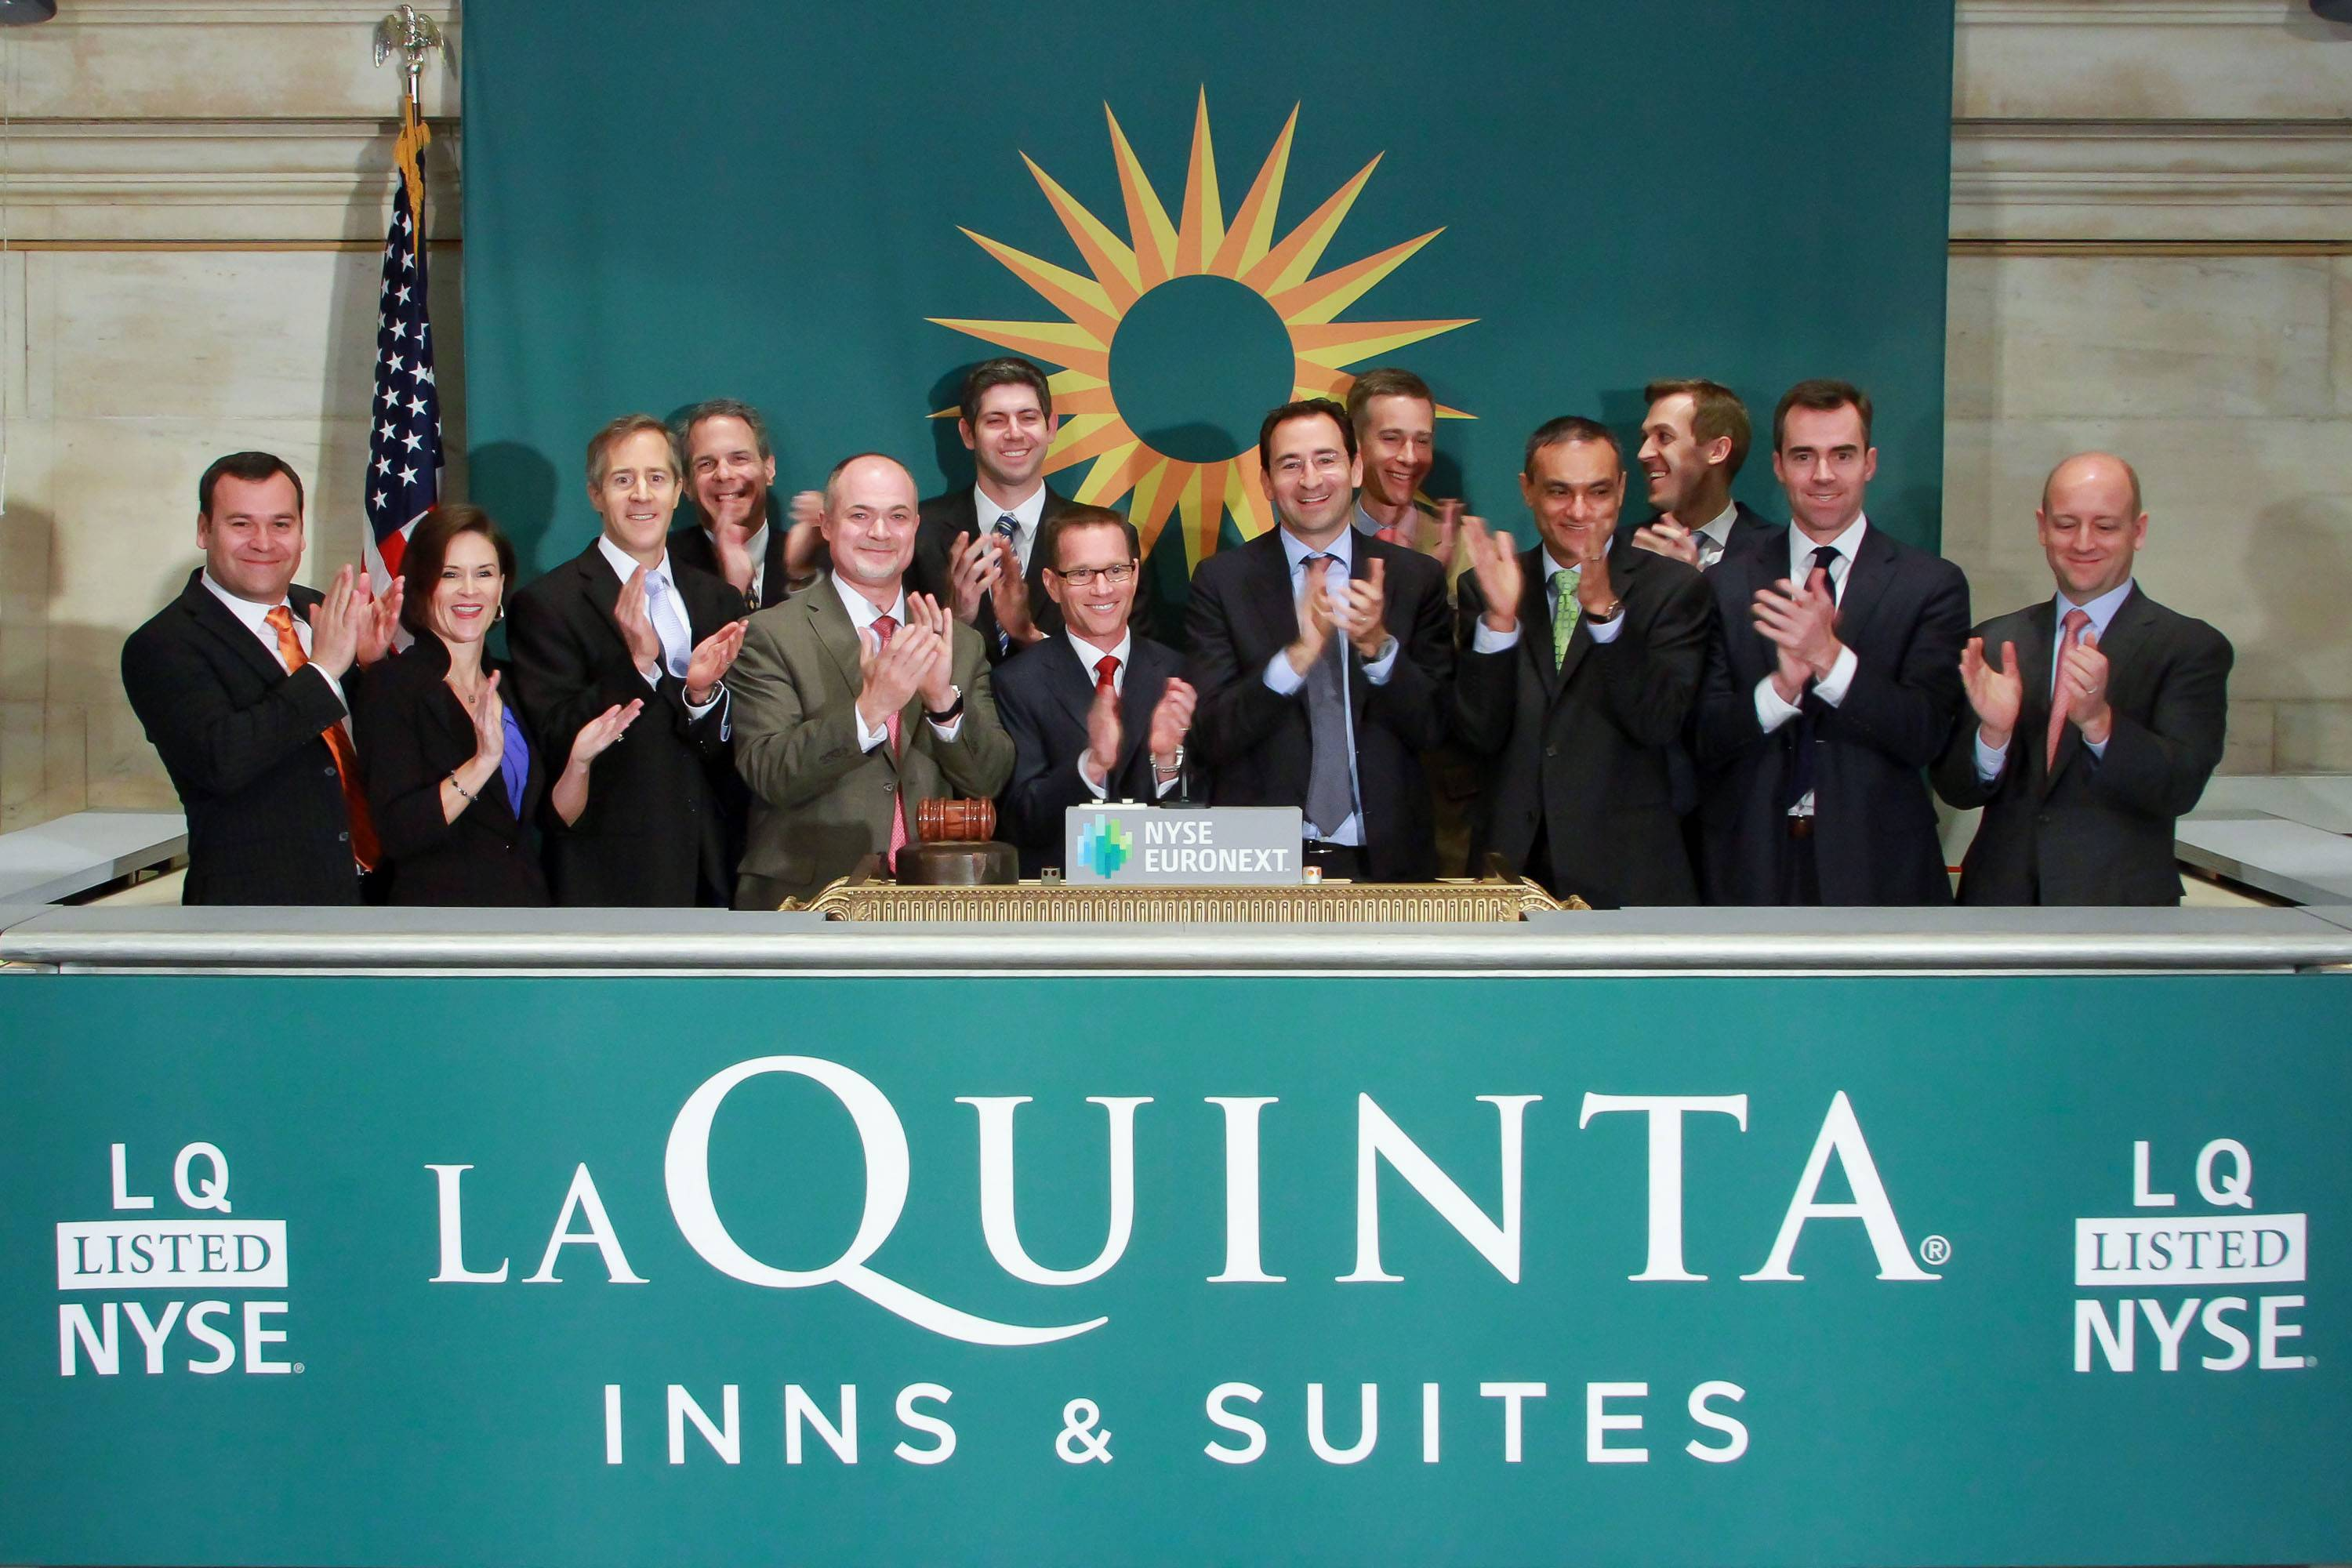 Executives and guests of La Quinta Holdings applaud the opening bell at the New York Stock Exchange on April 9, in honor of the company's IPO.